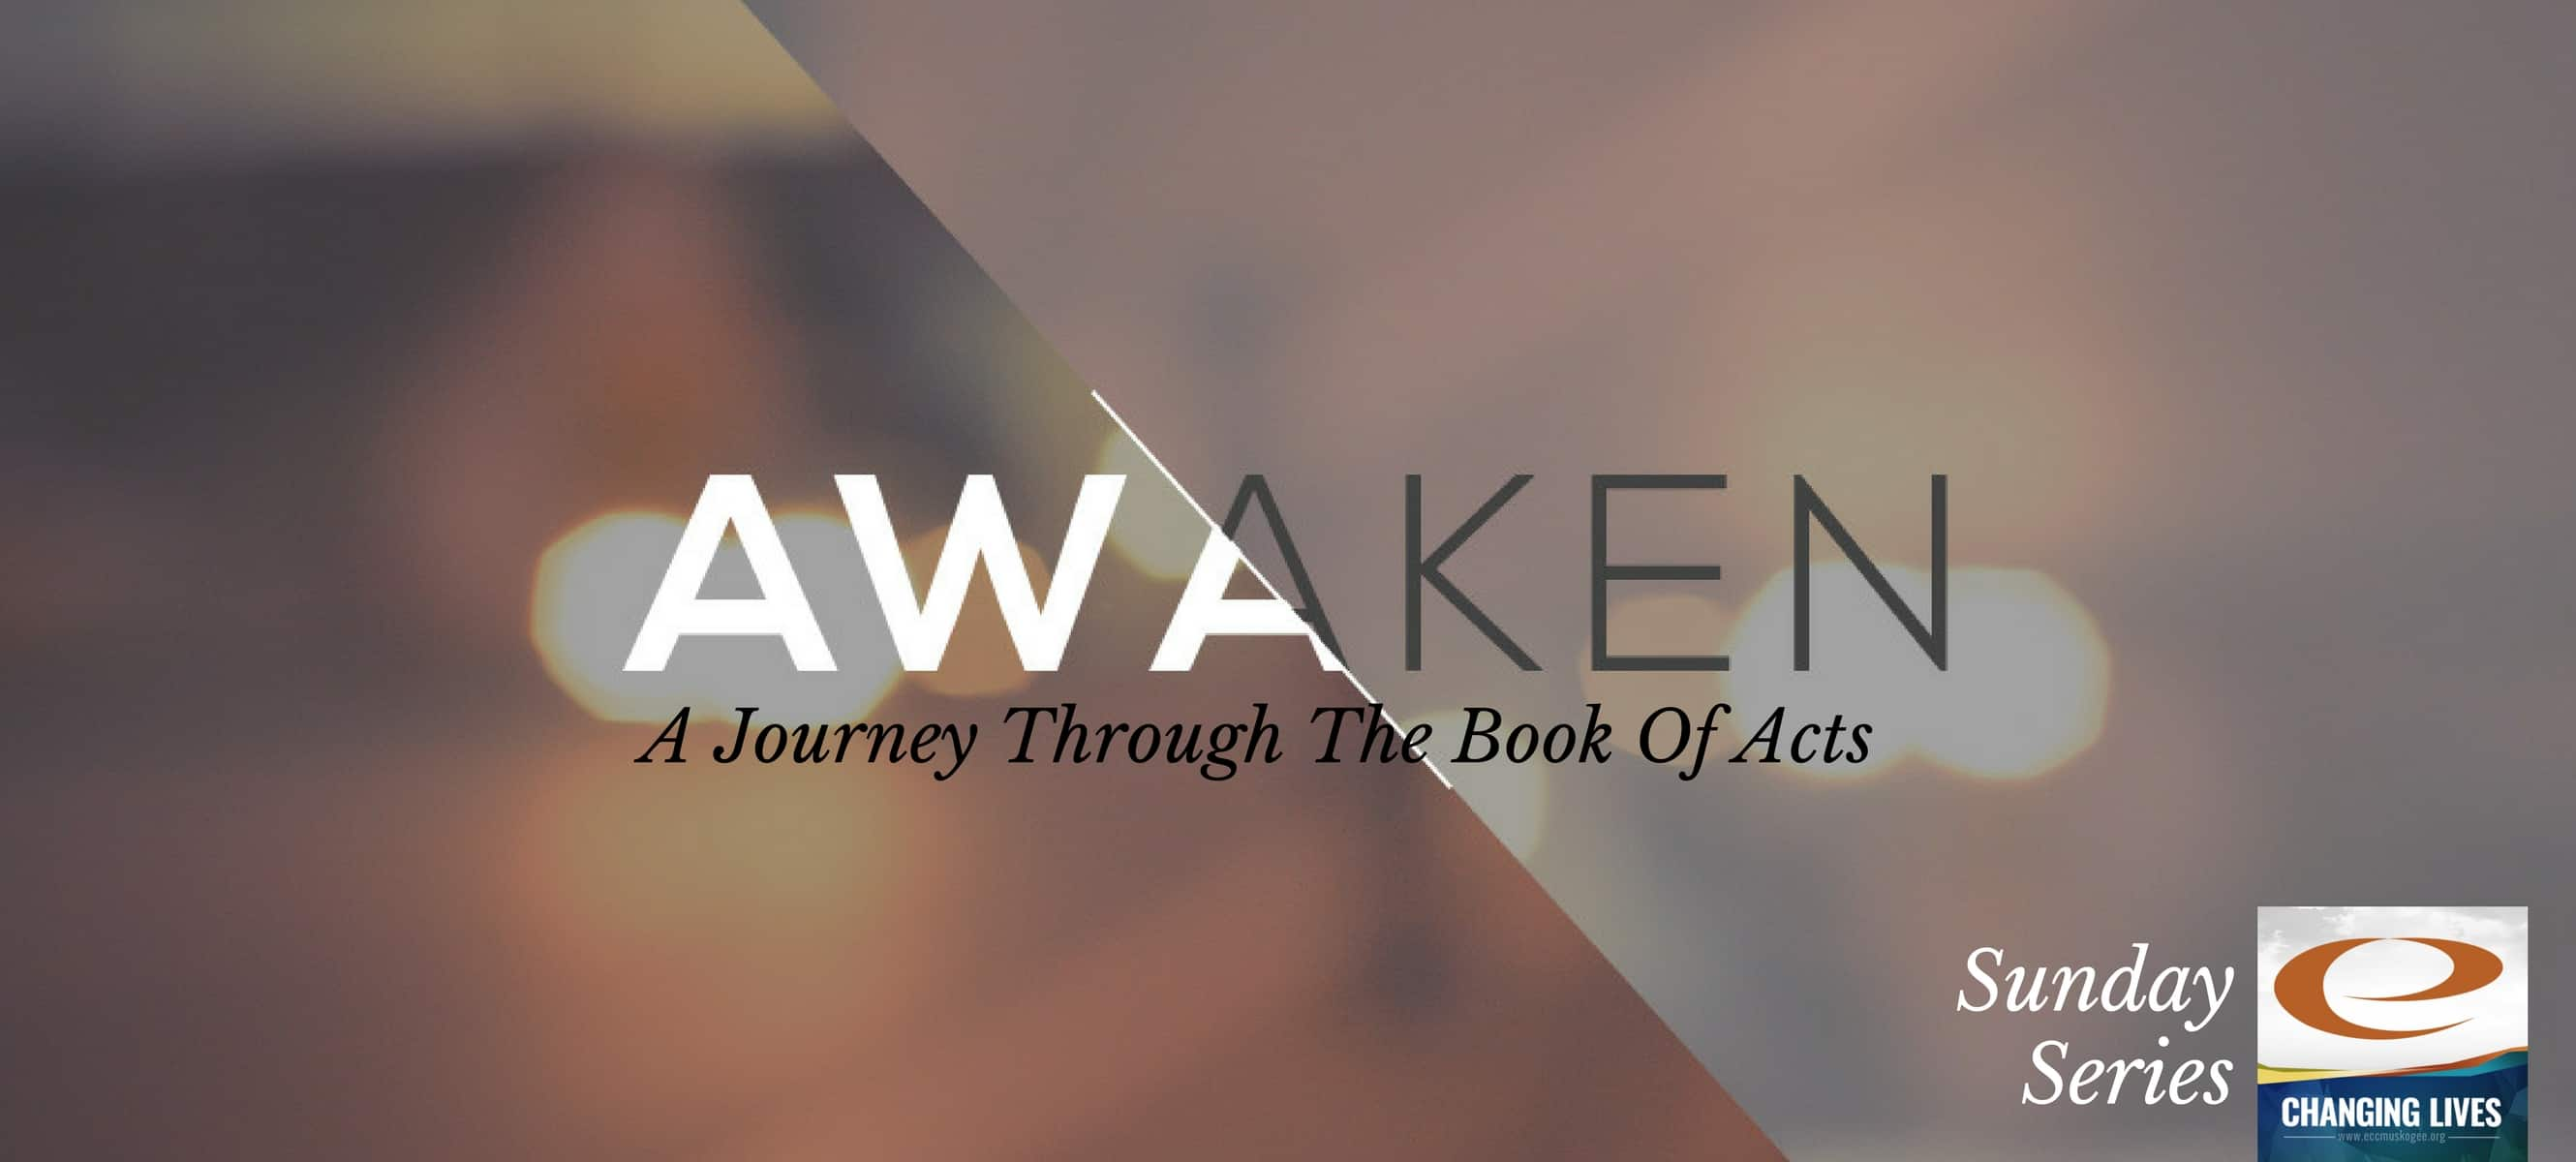 Awaken_ A Journey Through The Book of Acts Web Slider